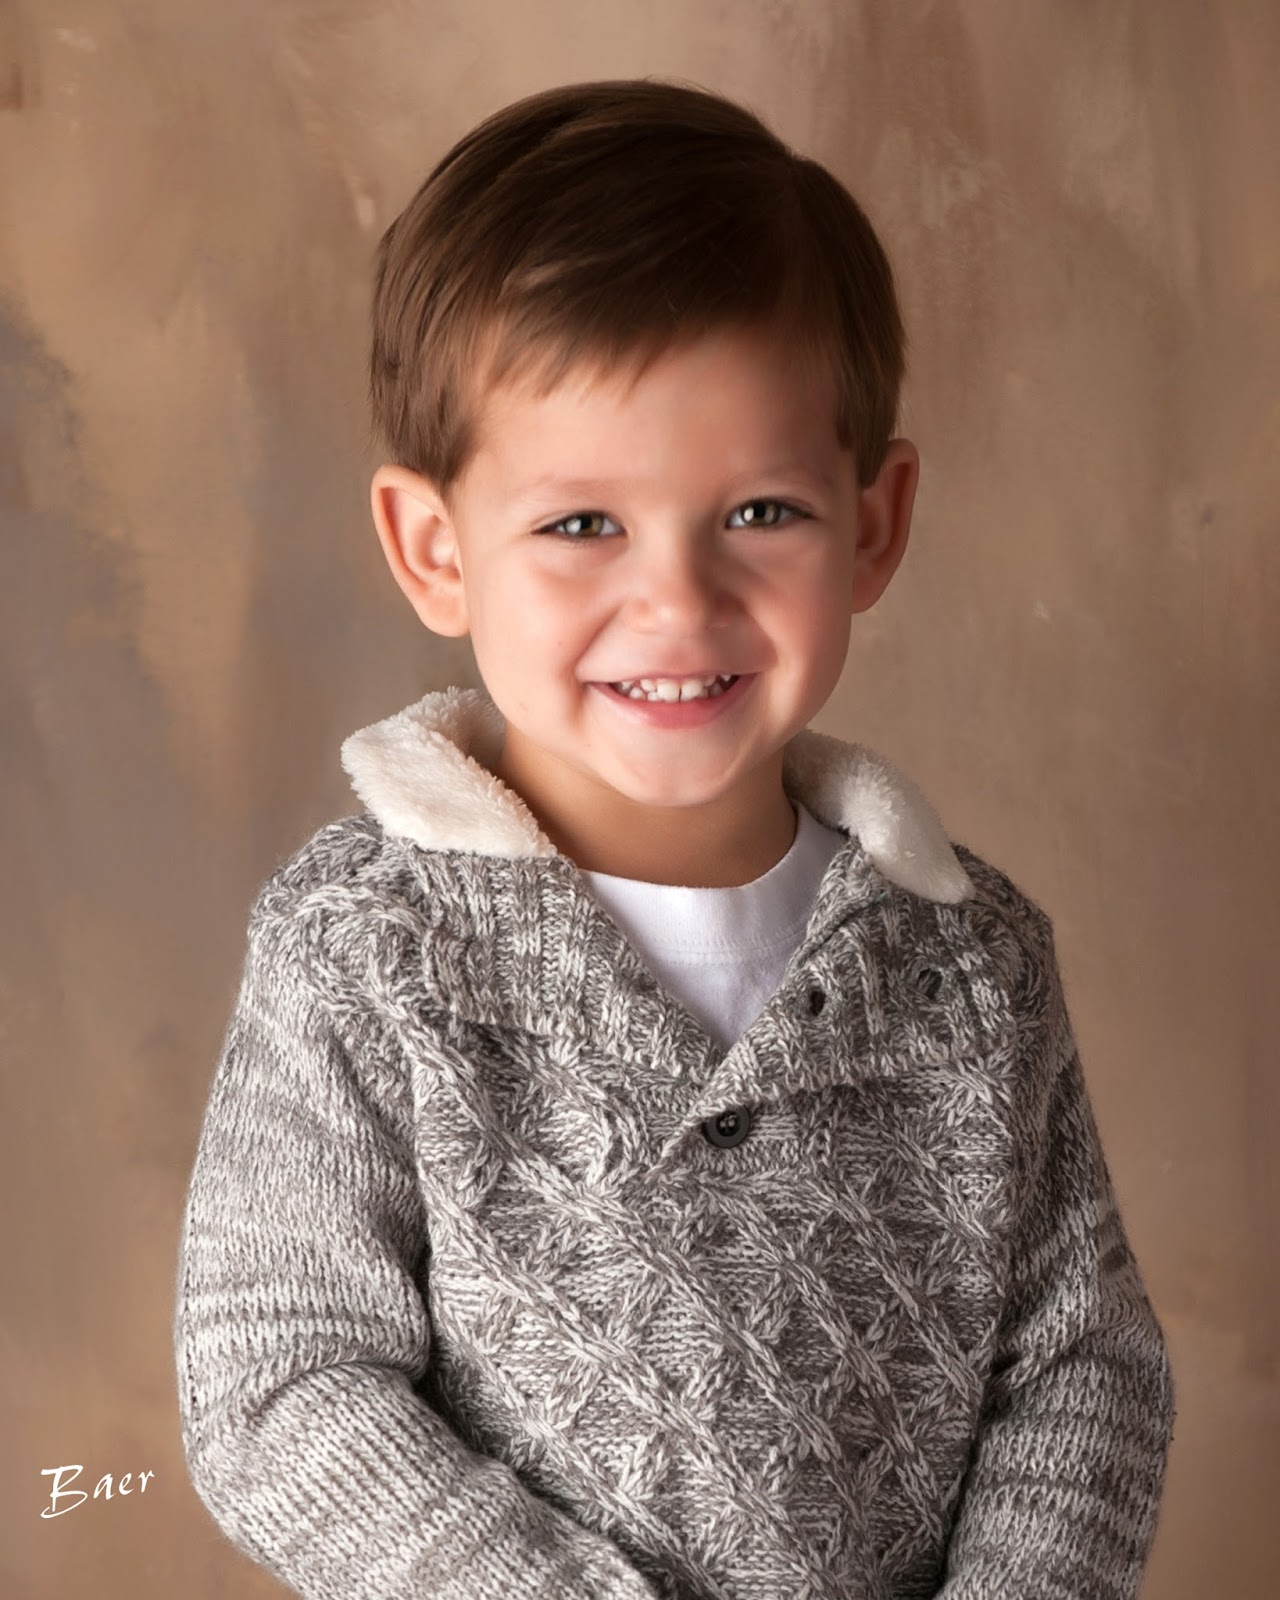 baer photography: 2018 cute kid contest